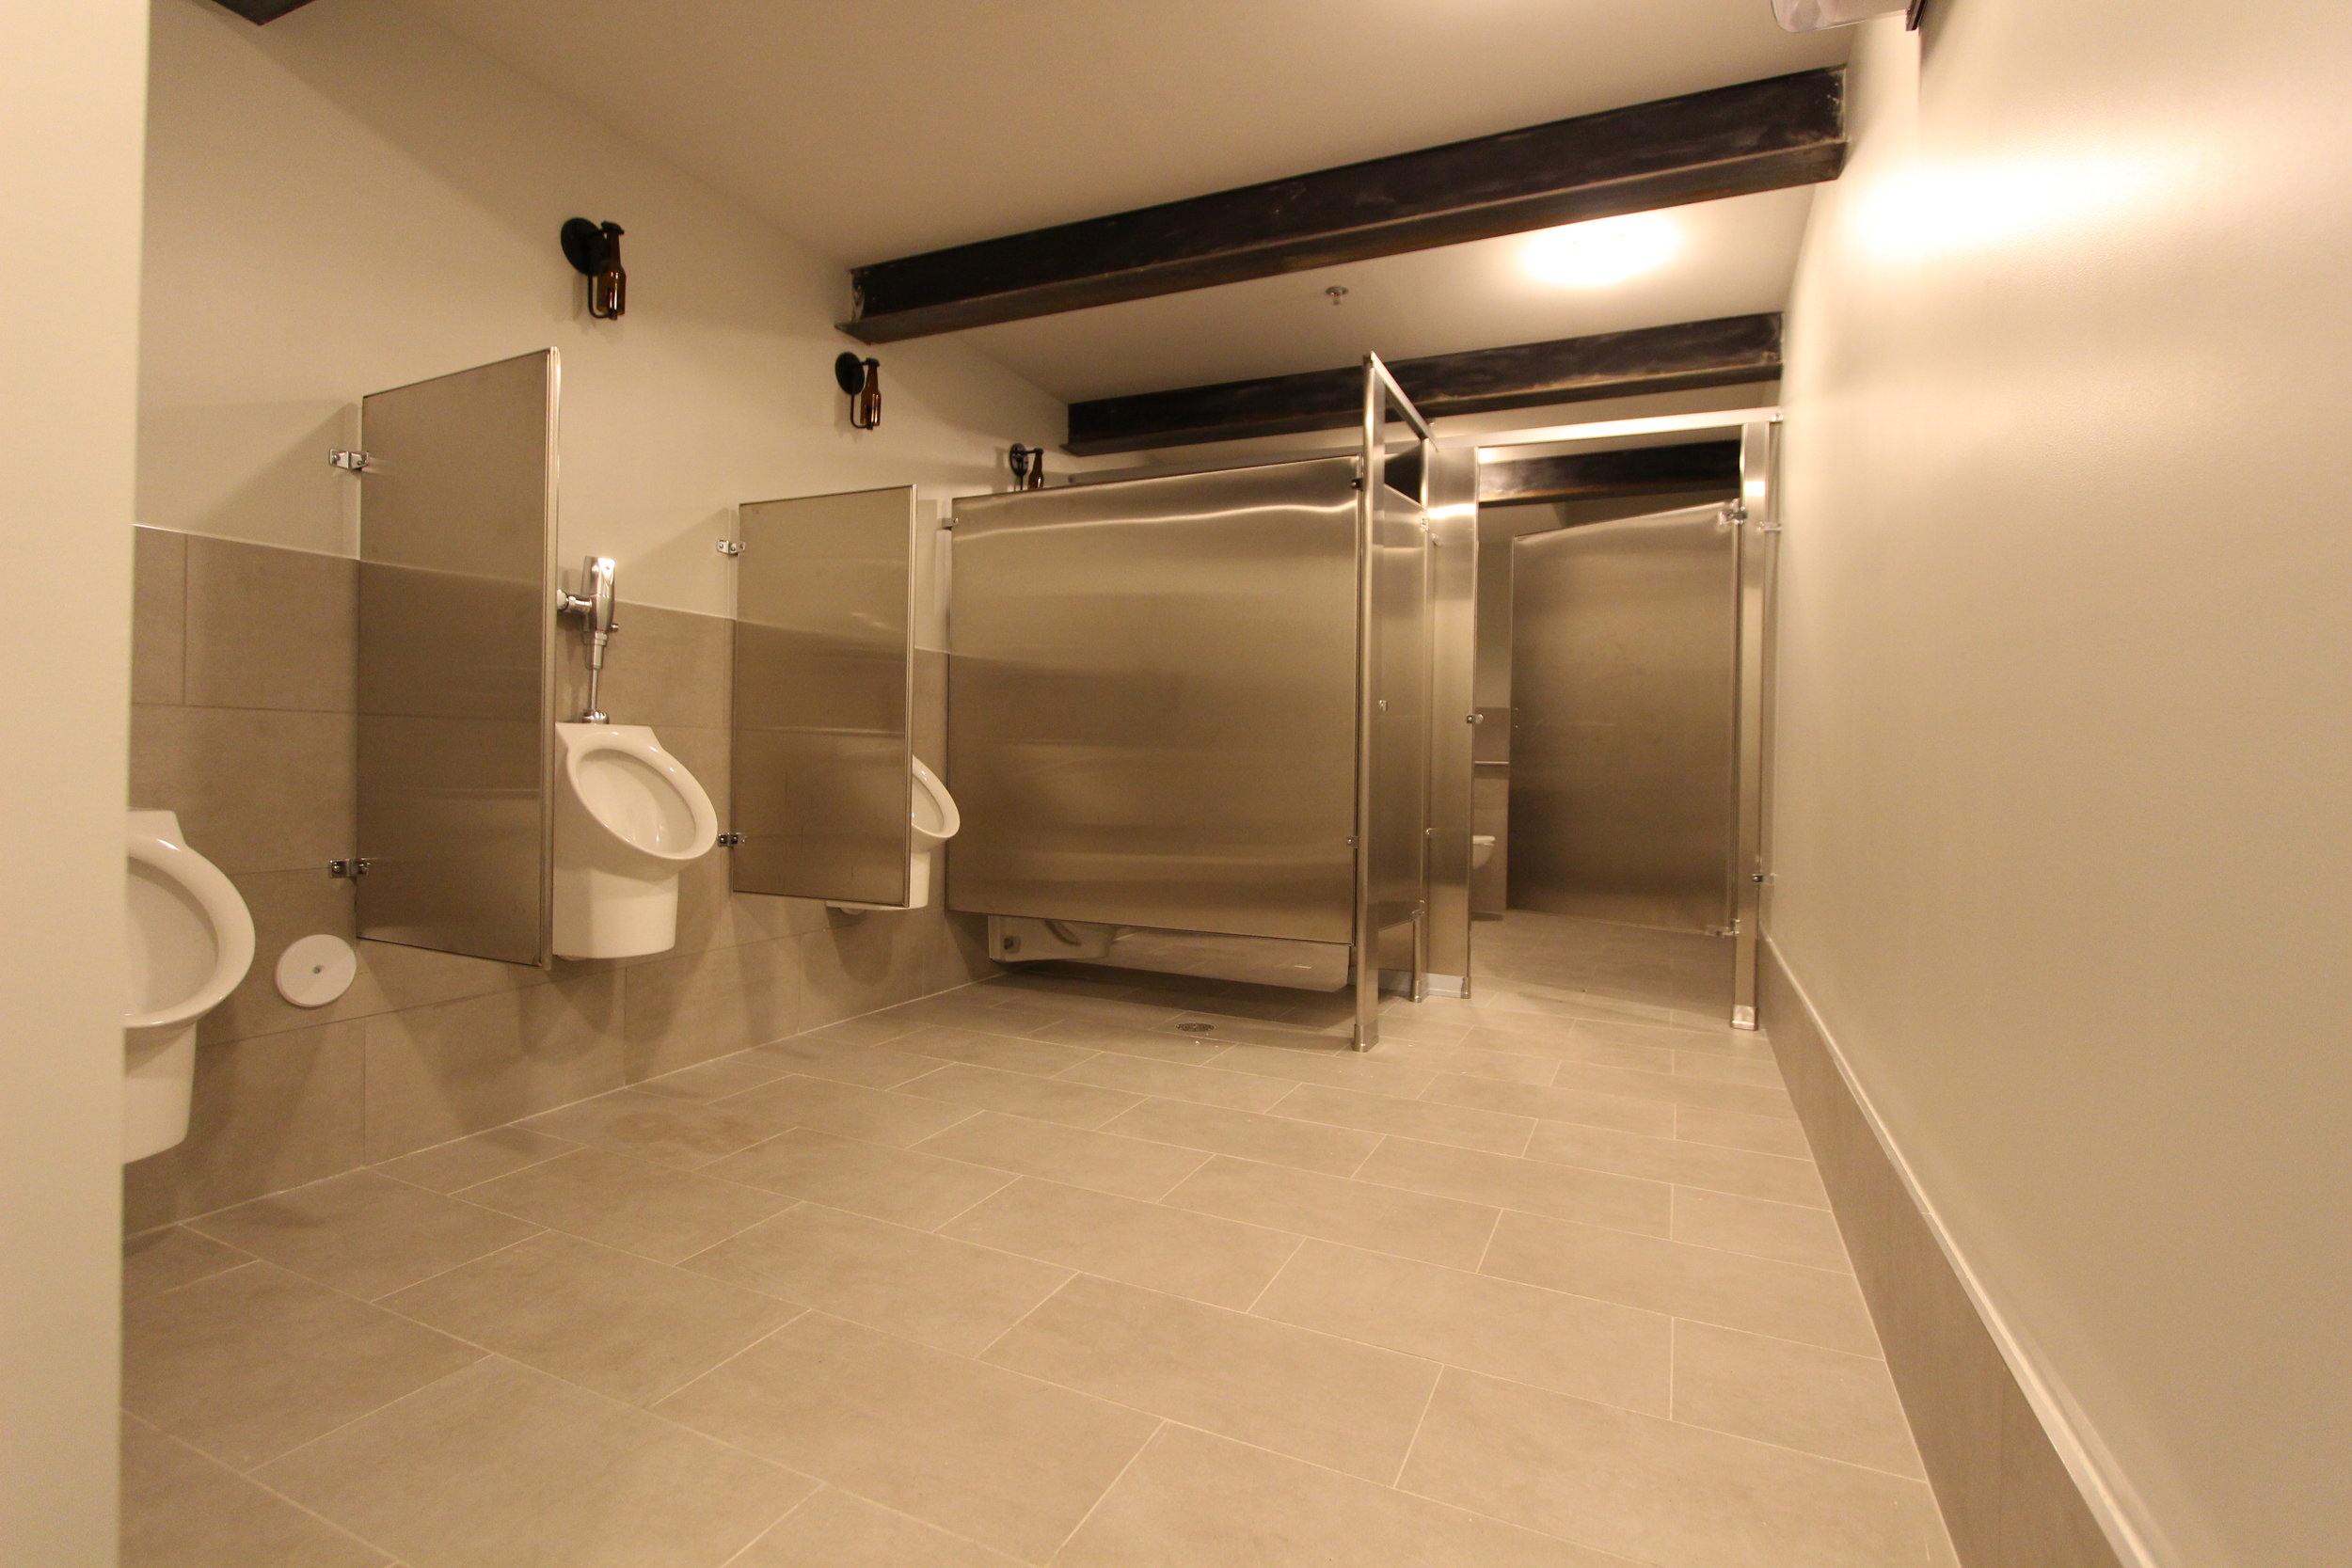 RTI Supply - The Leader for Bathroom Partitions in South Florida